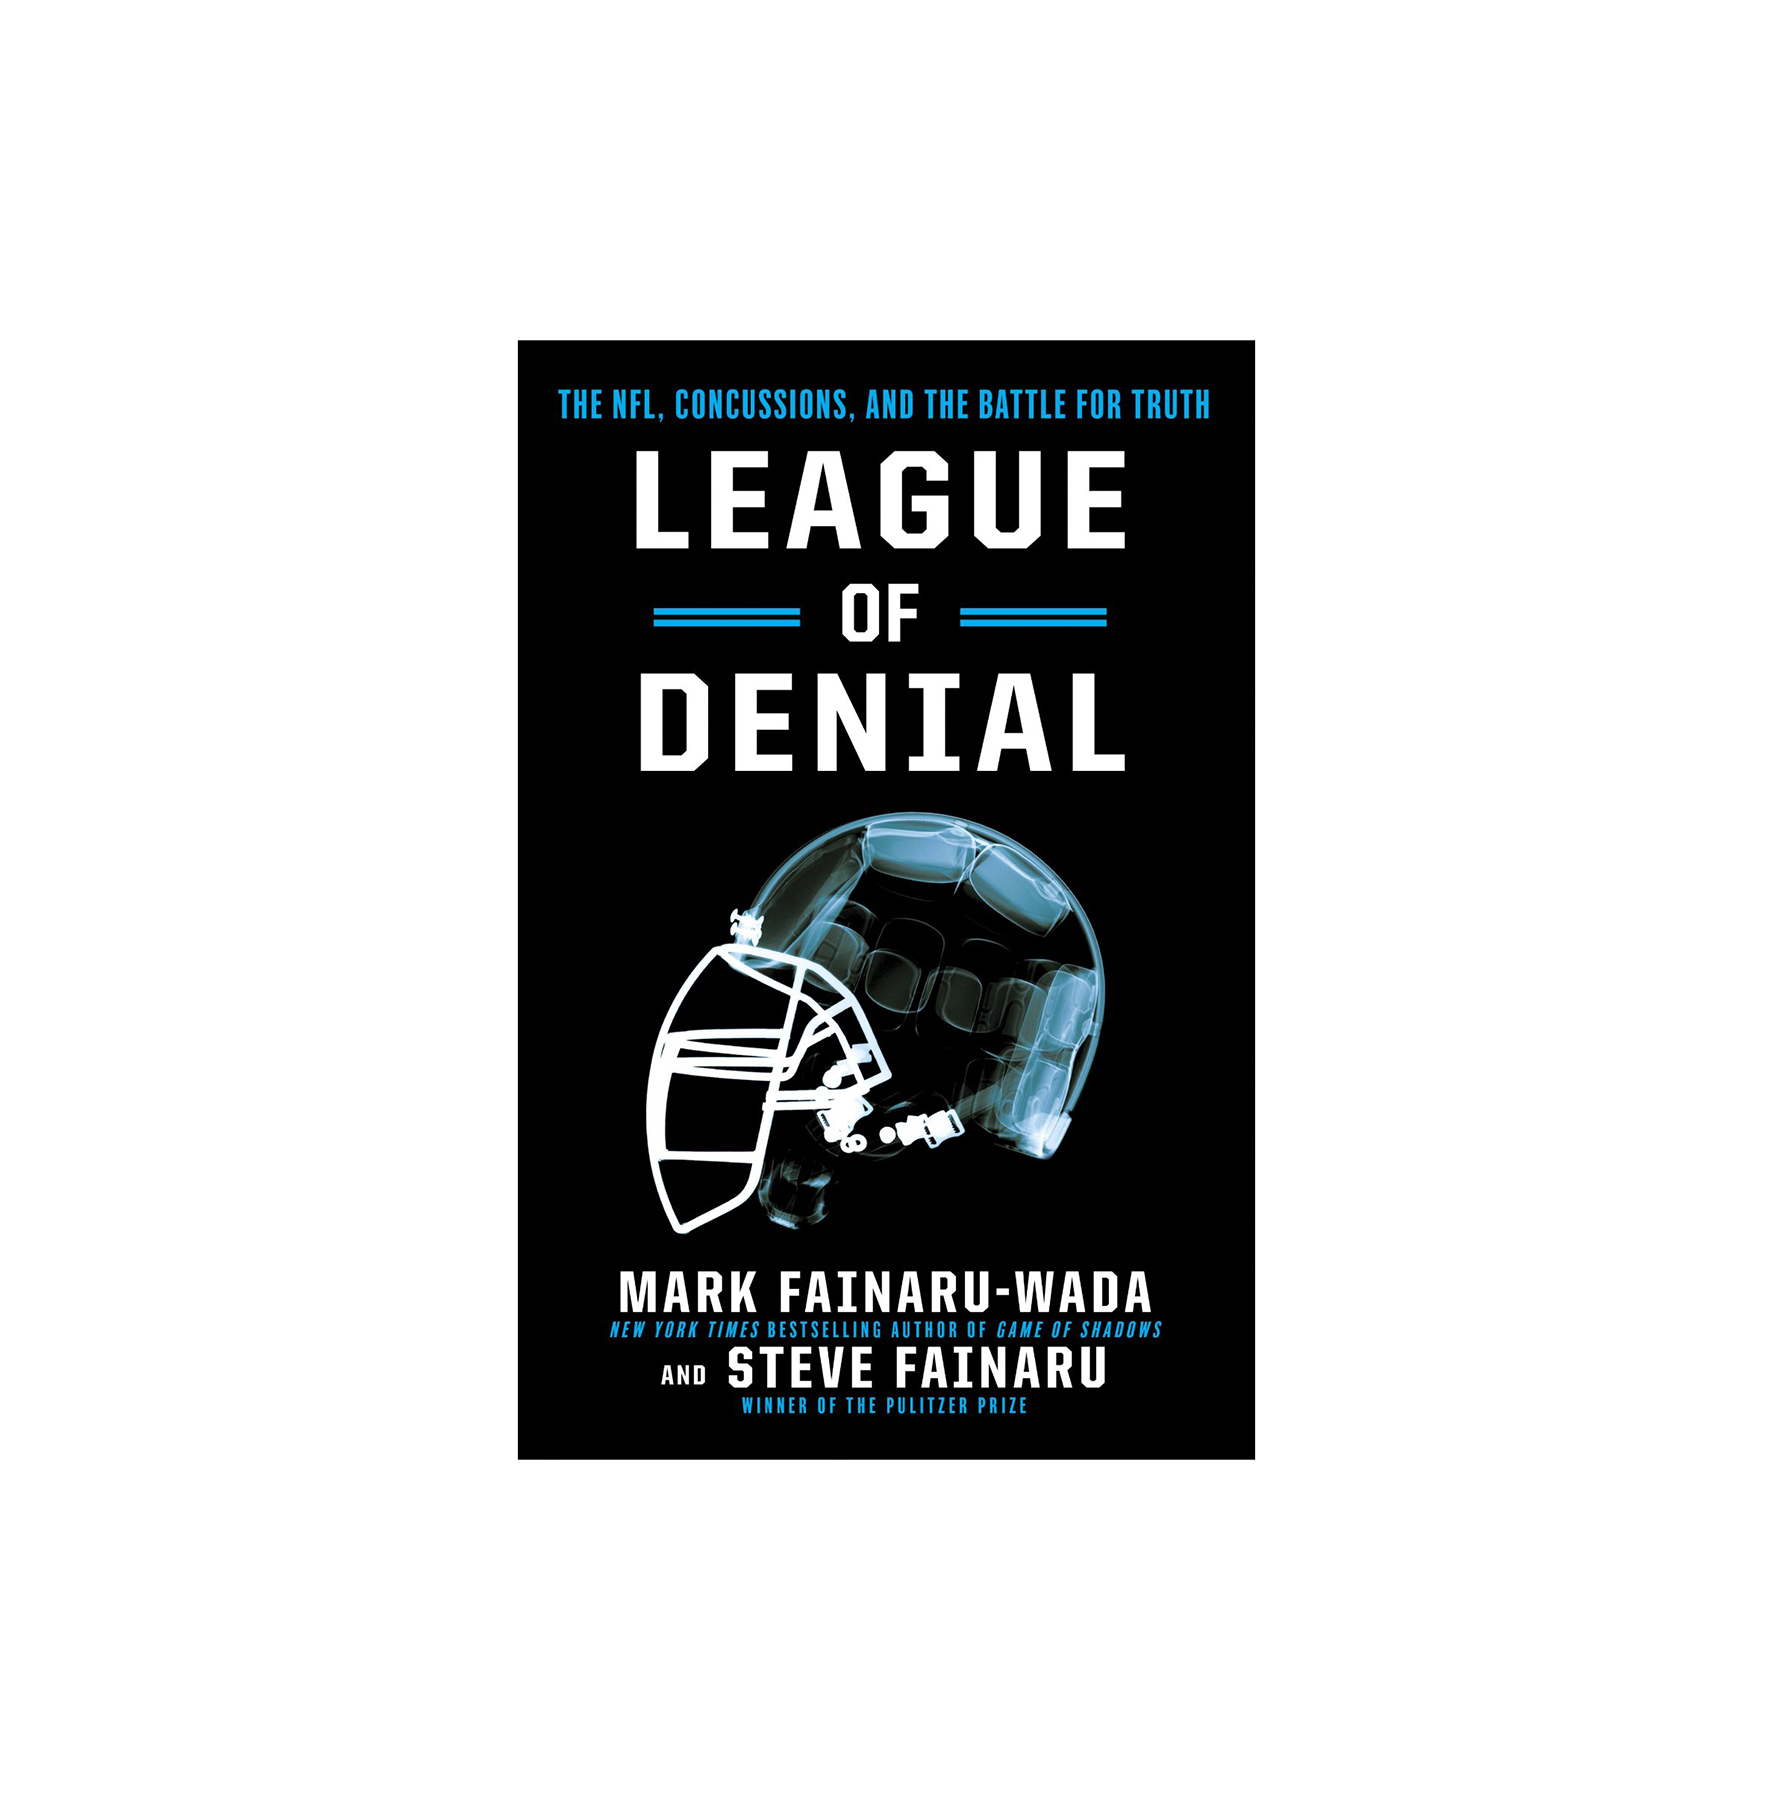 League of Denial, by Mark Fainaru-Wada and Steve Fainaru